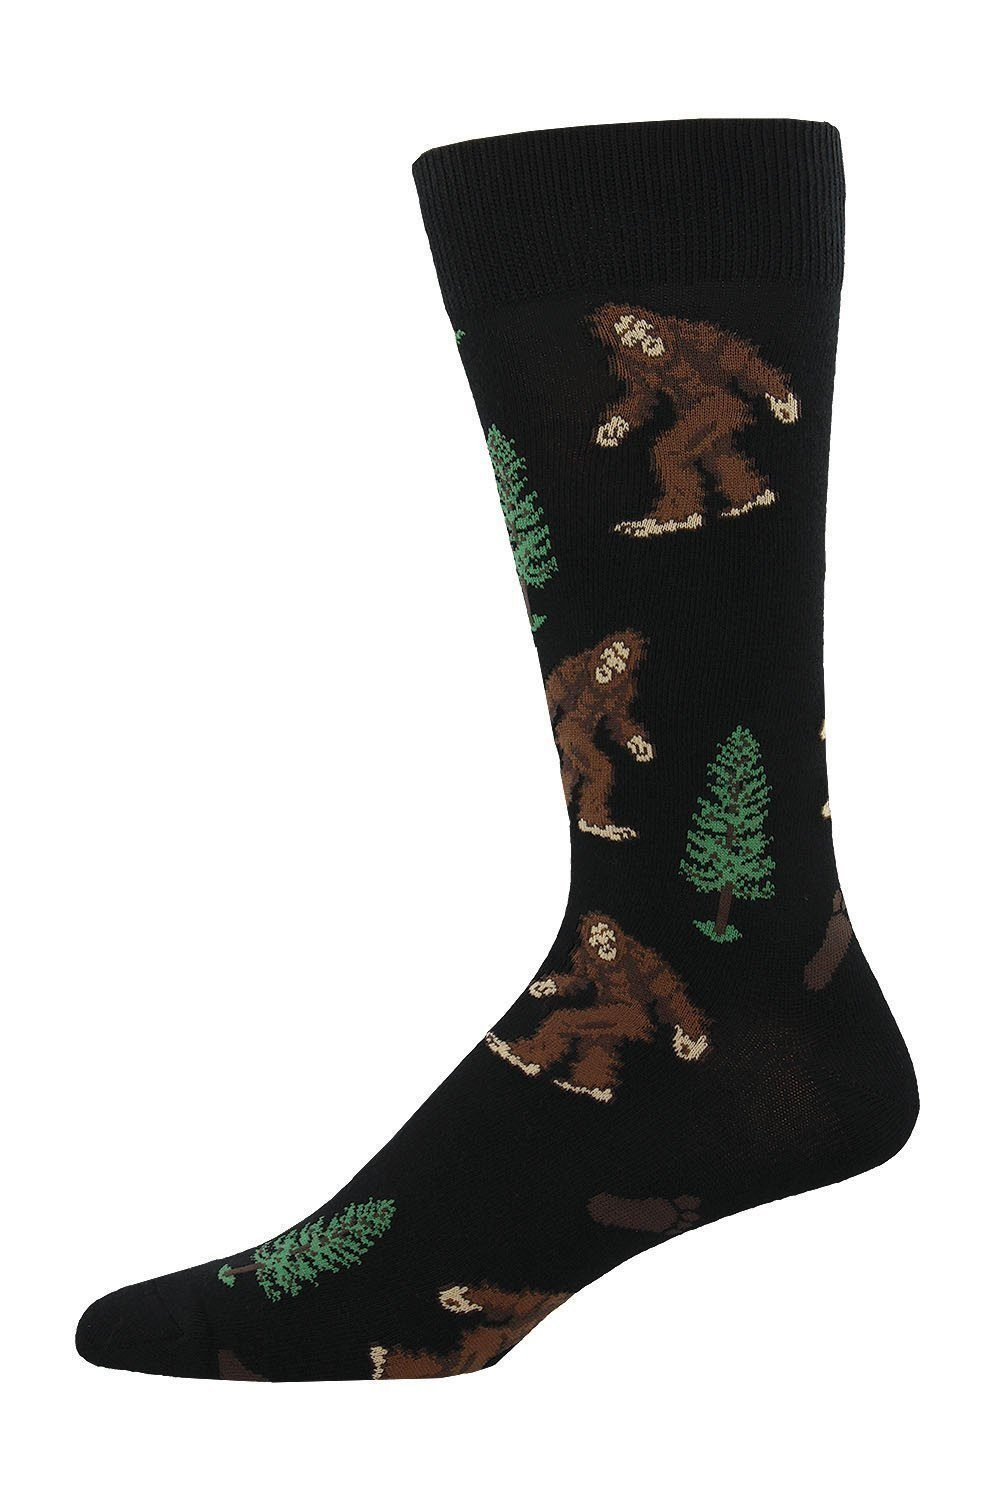 Socksmith - King Size Bigfoot Crew Socks | Men's - Knock Your Socks Off